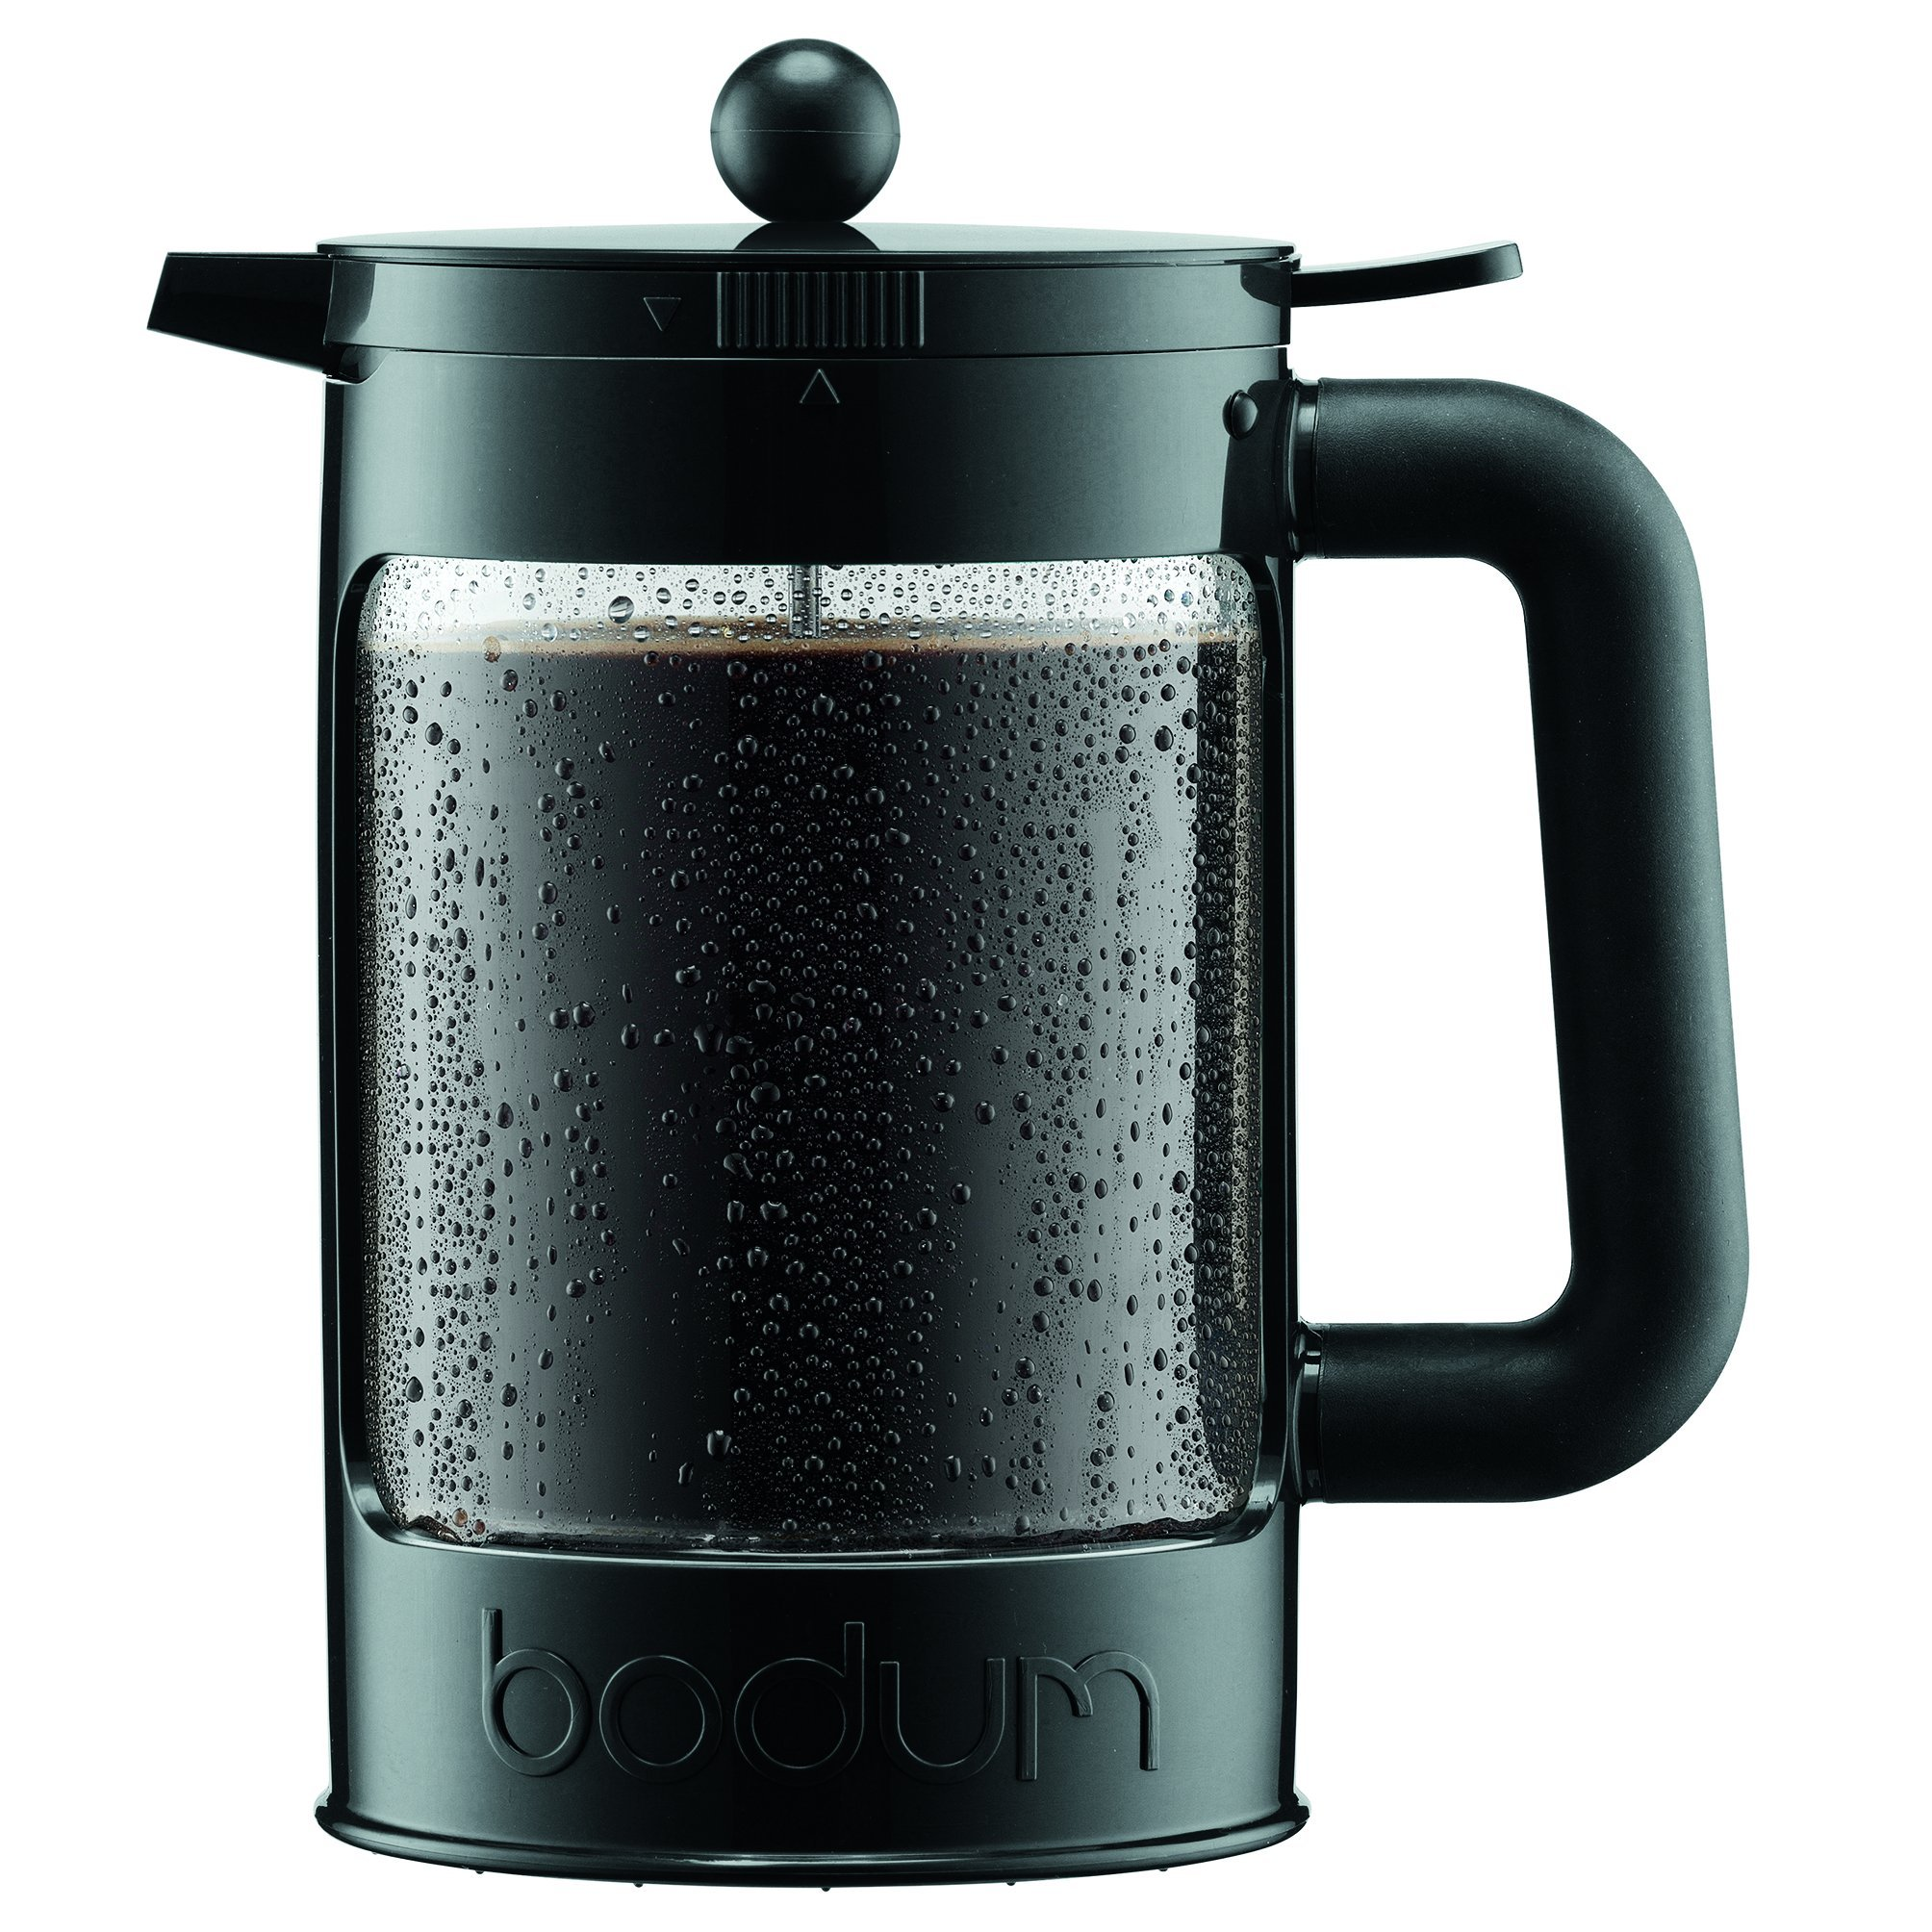 Bodum Bean Cold Brew Coffee Maker, Press, Plastic, 1.5 Liter, 51 Ounce, Black by Bodum (Image #1)